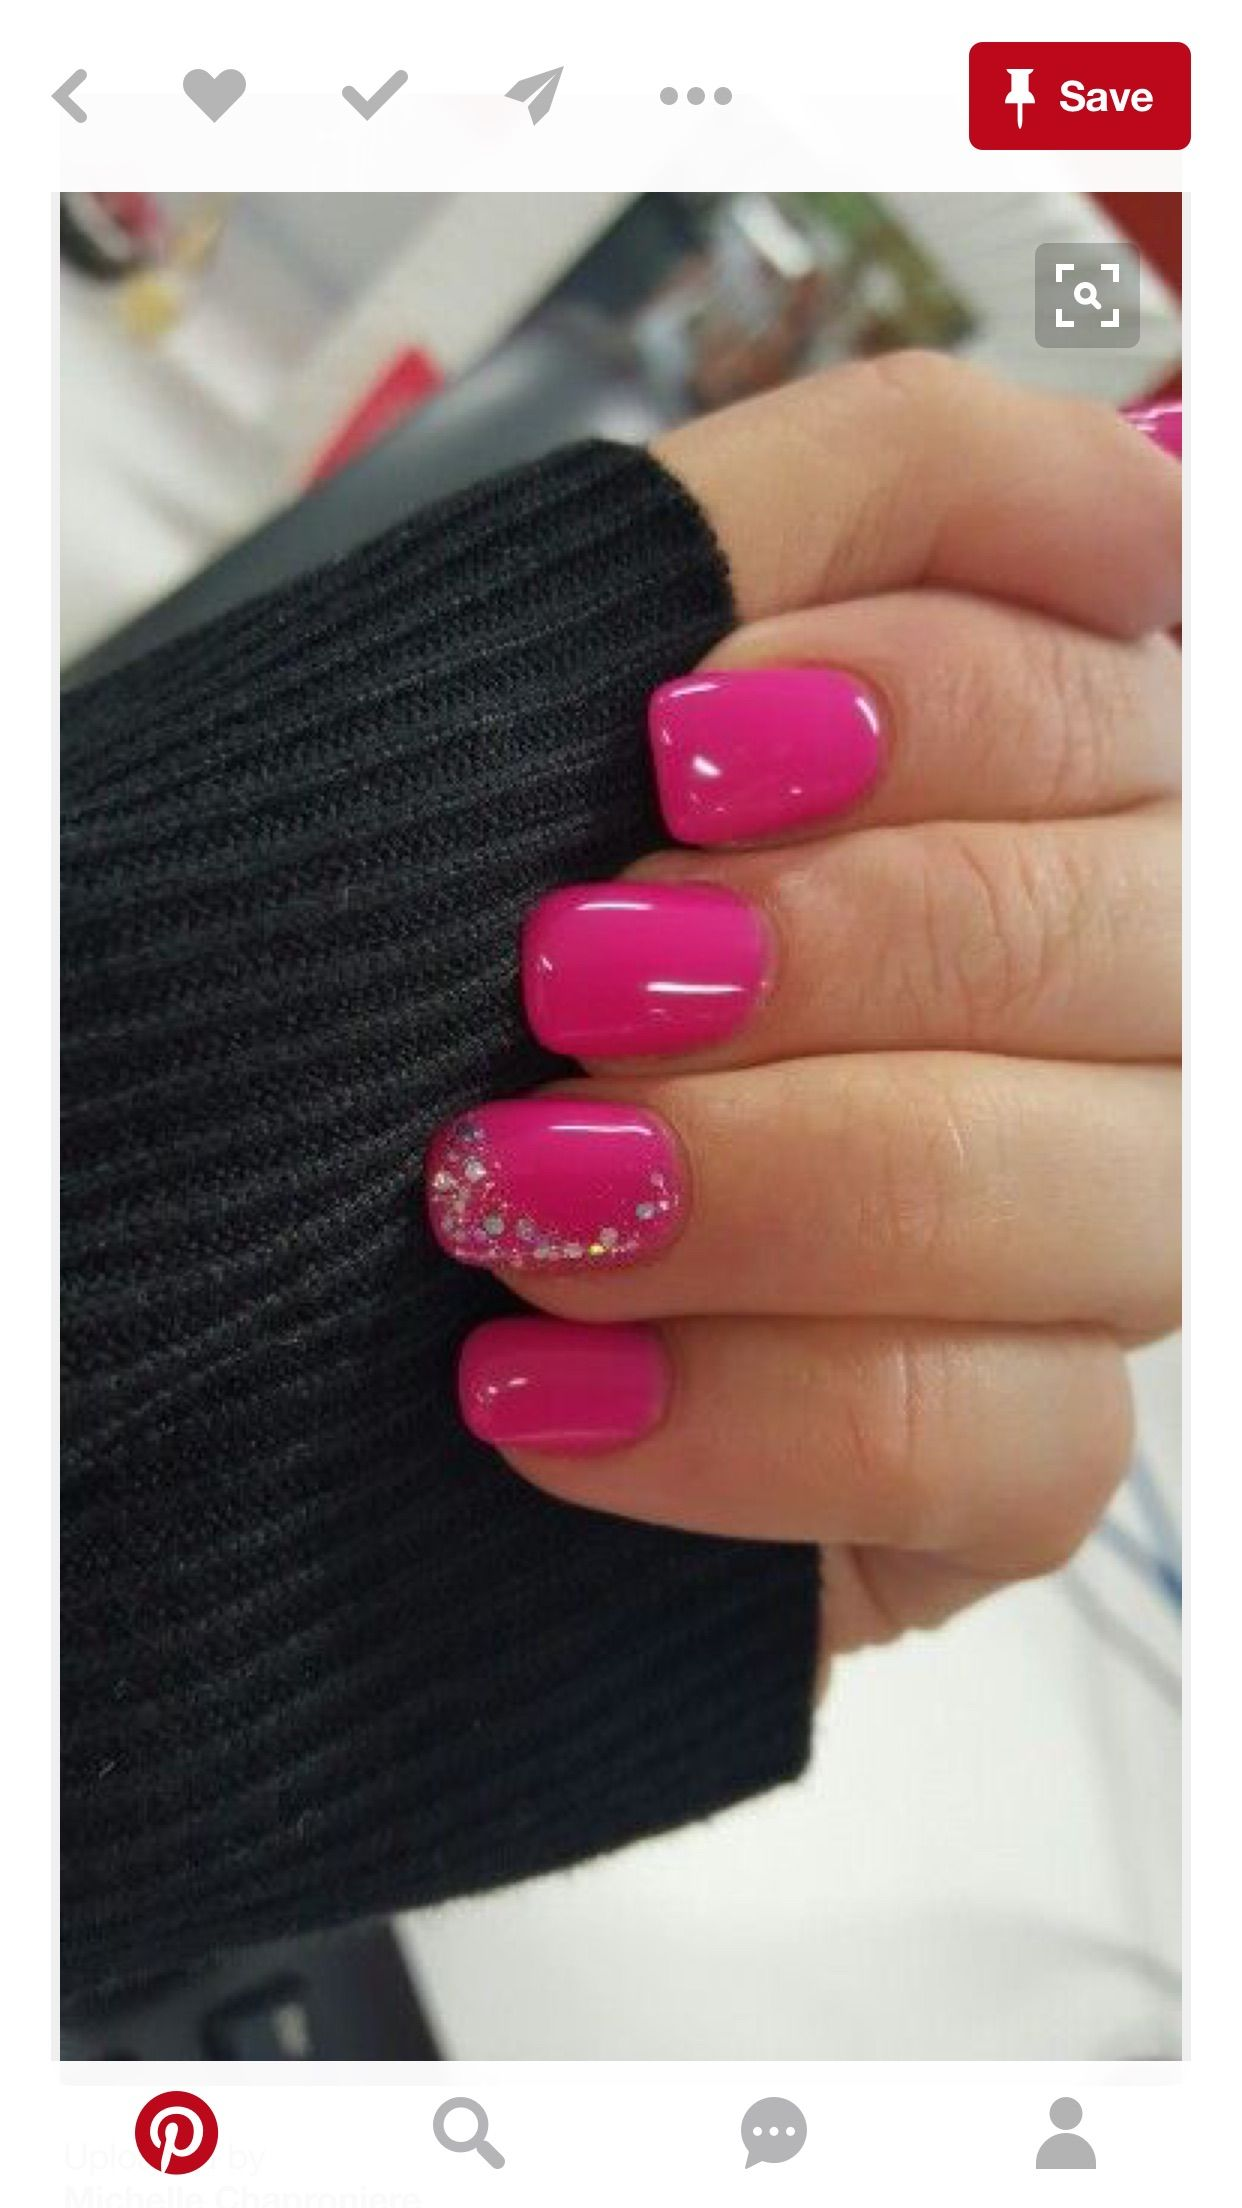 Pin by Jamie Mauller on My Style | Pinterest | Nail nail, Pedi and ...